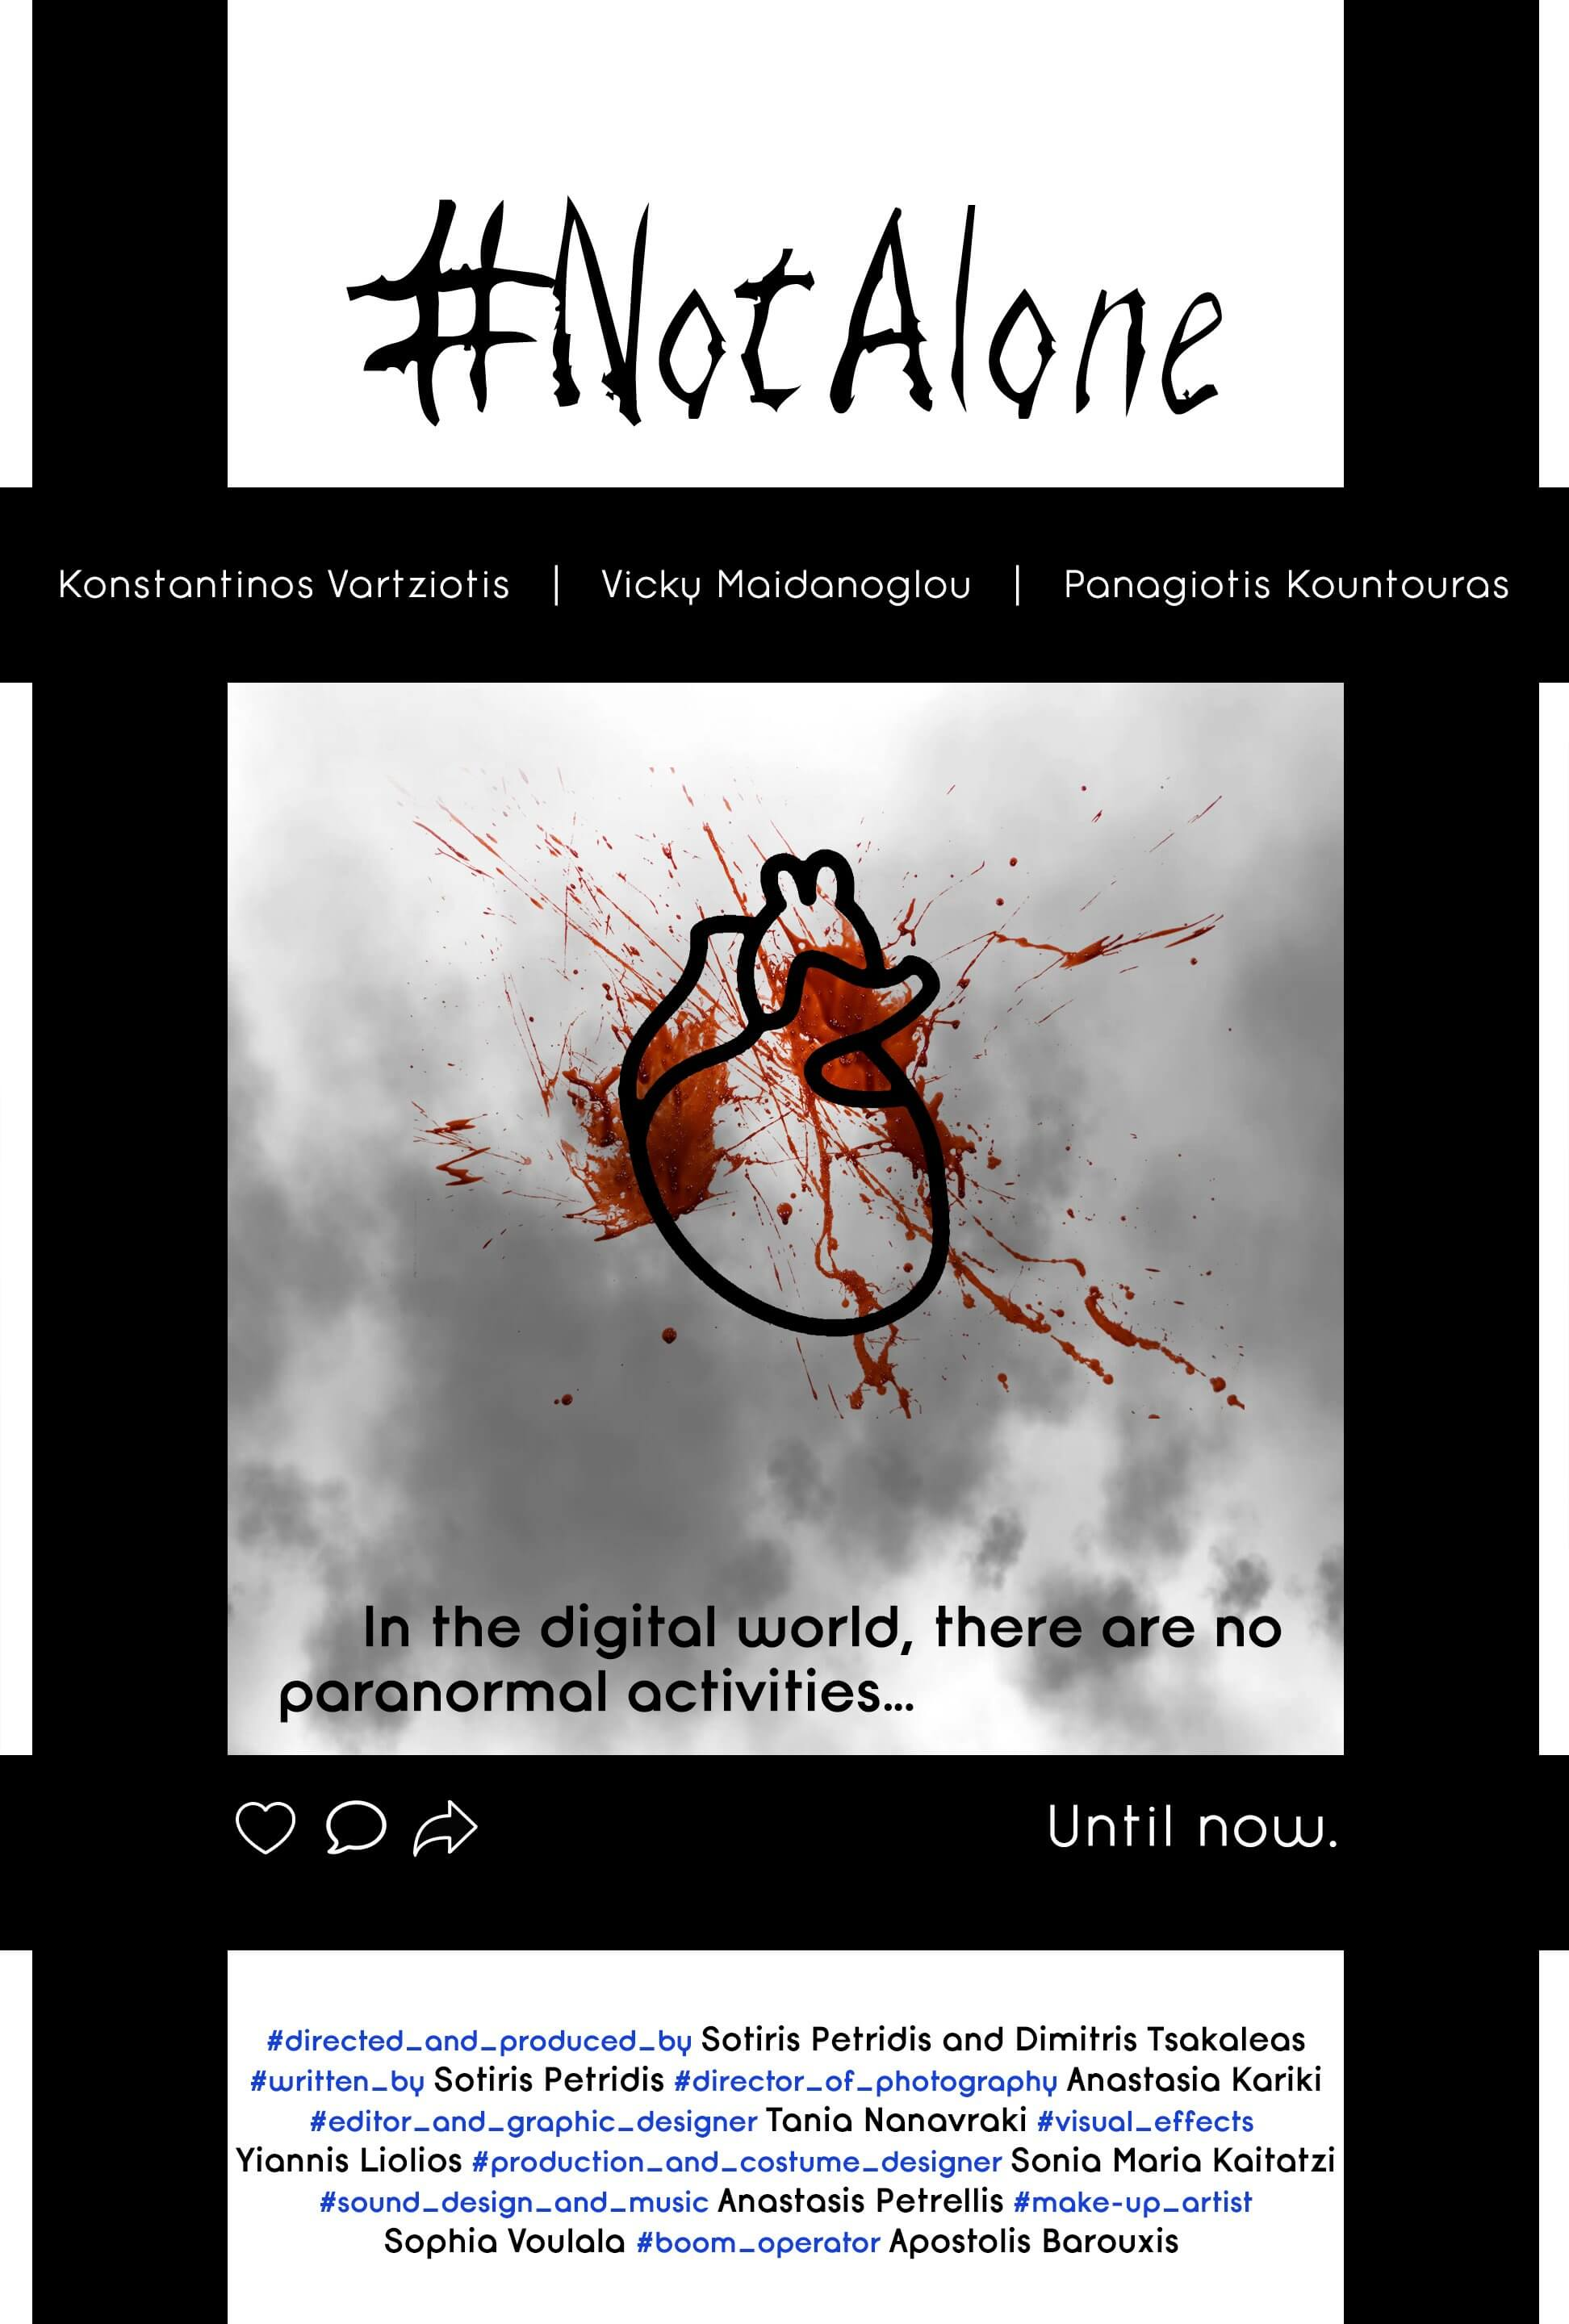 not alone3 1 - Watch Now: Social Media Horror Short #NotAlone